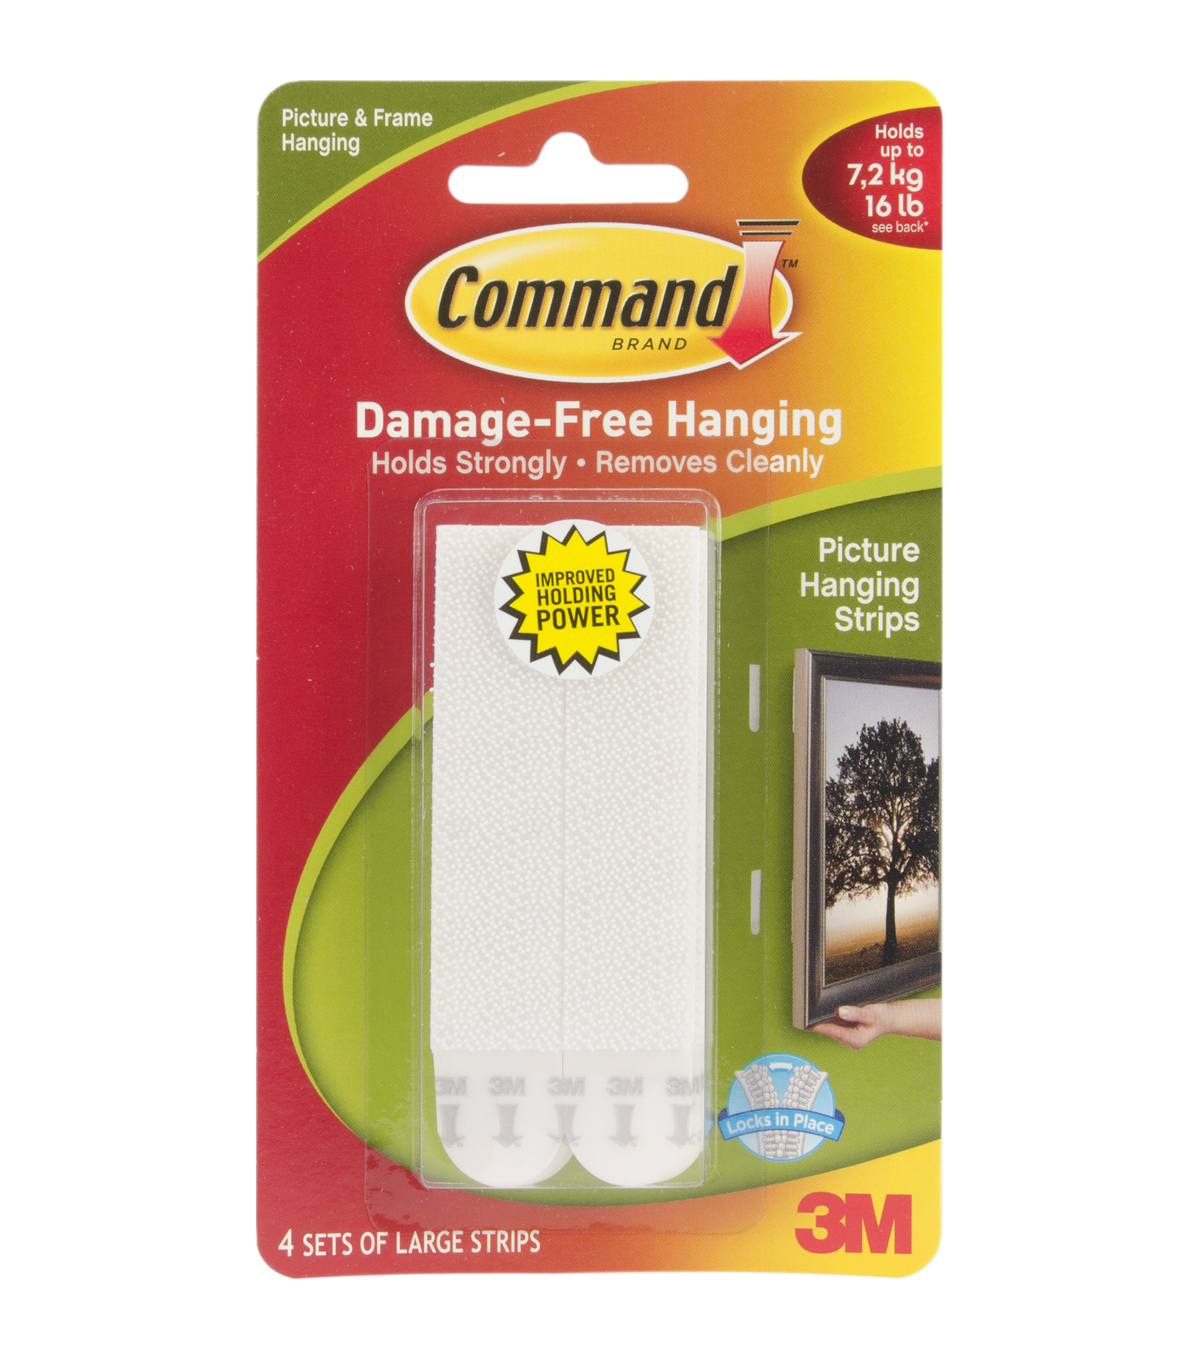 3m Command 4ct Large Picture Hanging Strips White